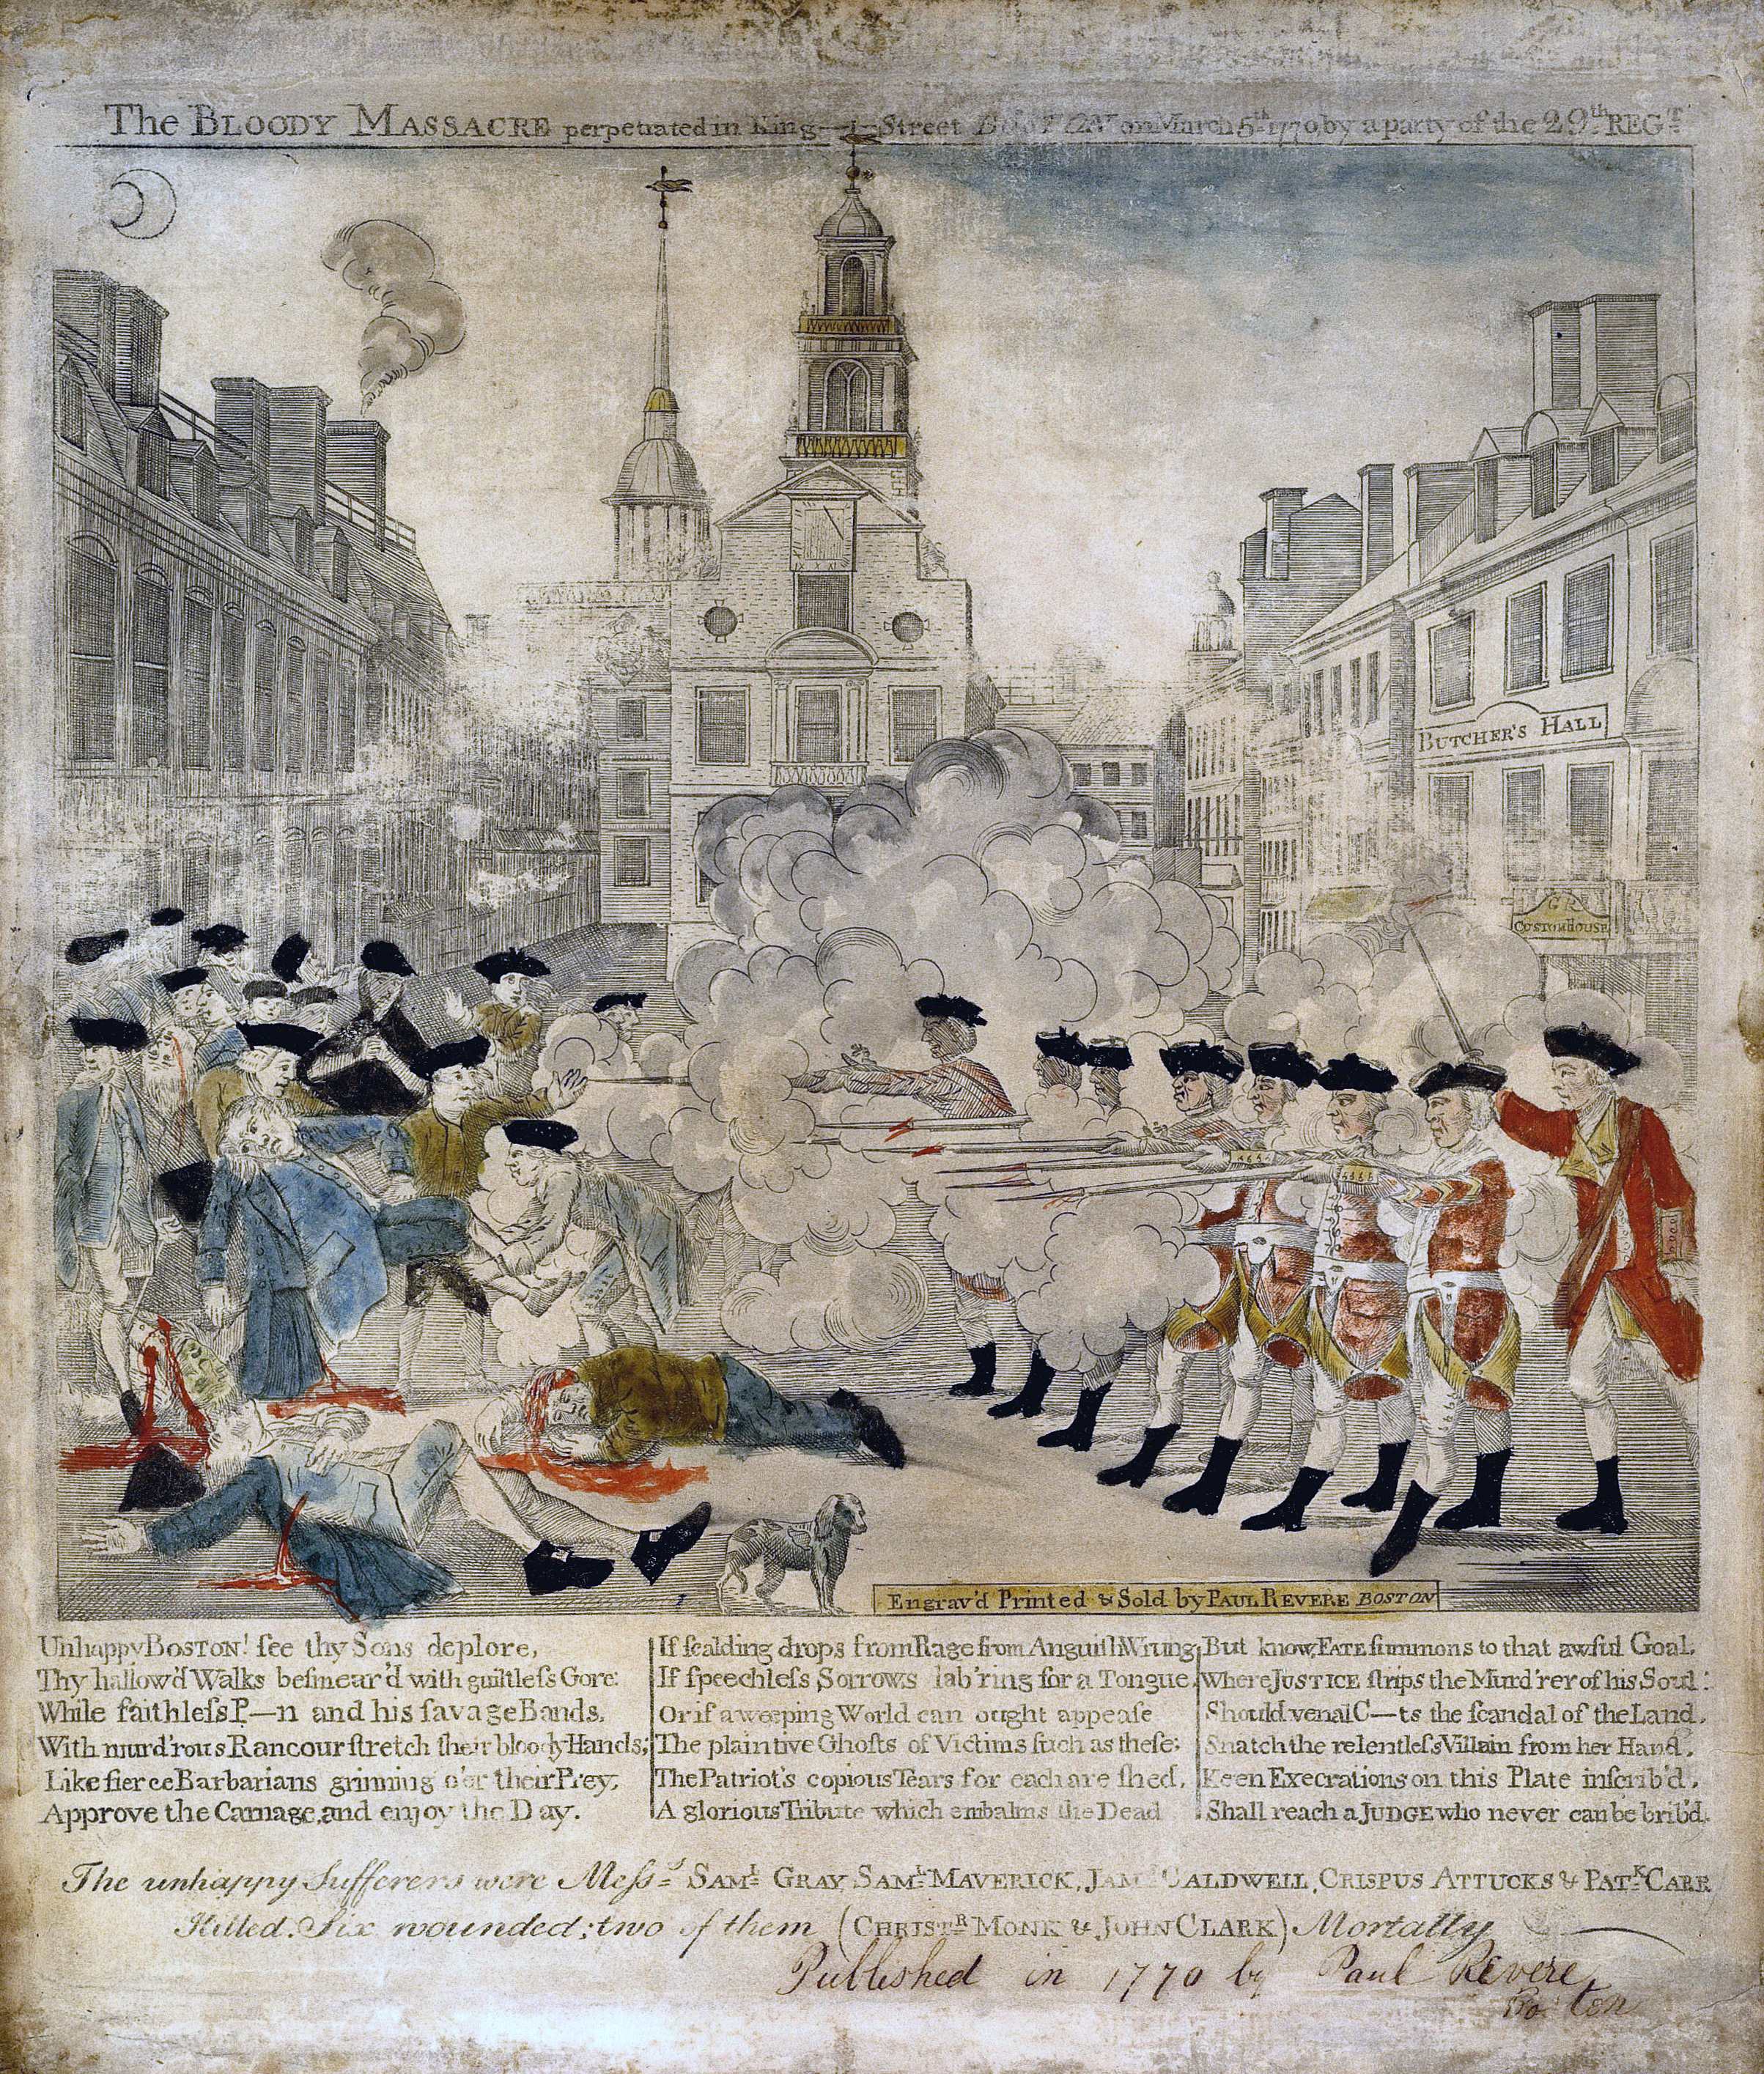 The Bloody Massacre, Paul Revere